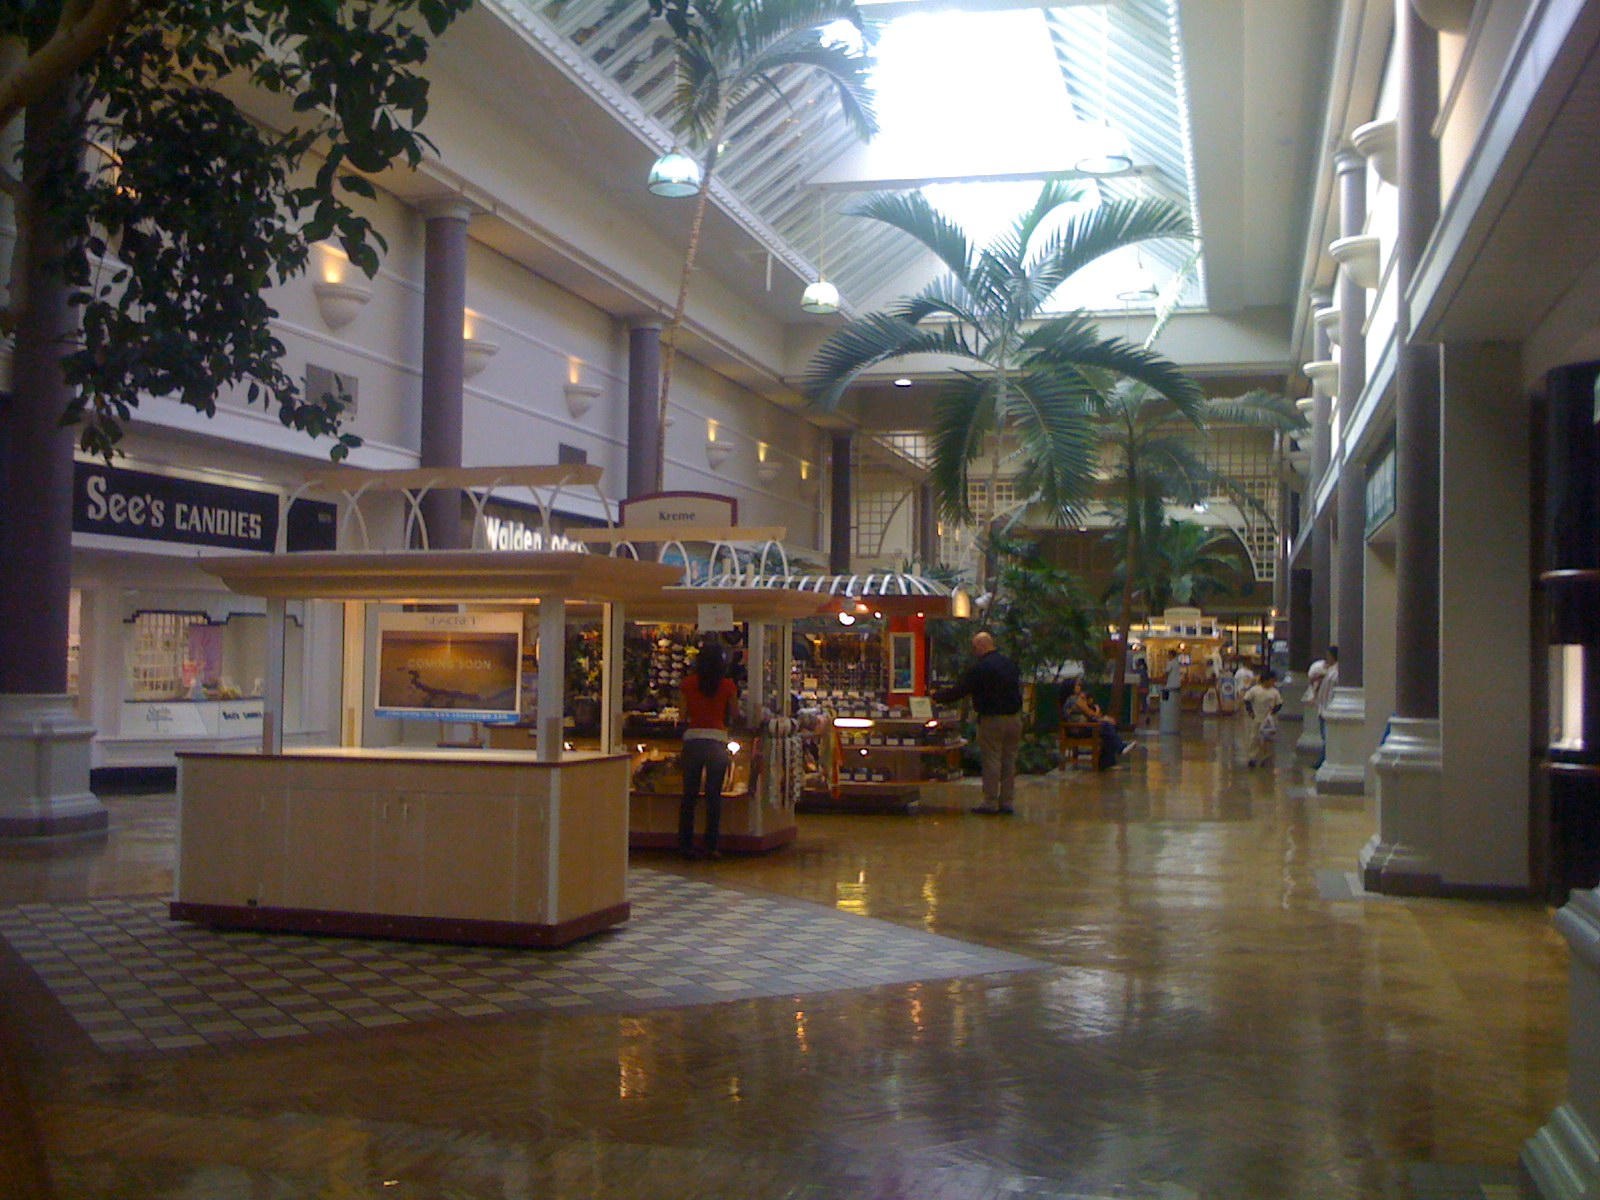 Northgate Mall San Rafael, CA () When I first came back from Singapore in and saw this mall I was taken aback. Whatever happened to all the shops. It used to be FUN shopping. The toy store next to Mervyns and directly across was a card/anime store where I purchased my very first Pokémon pack. There was a book /5().